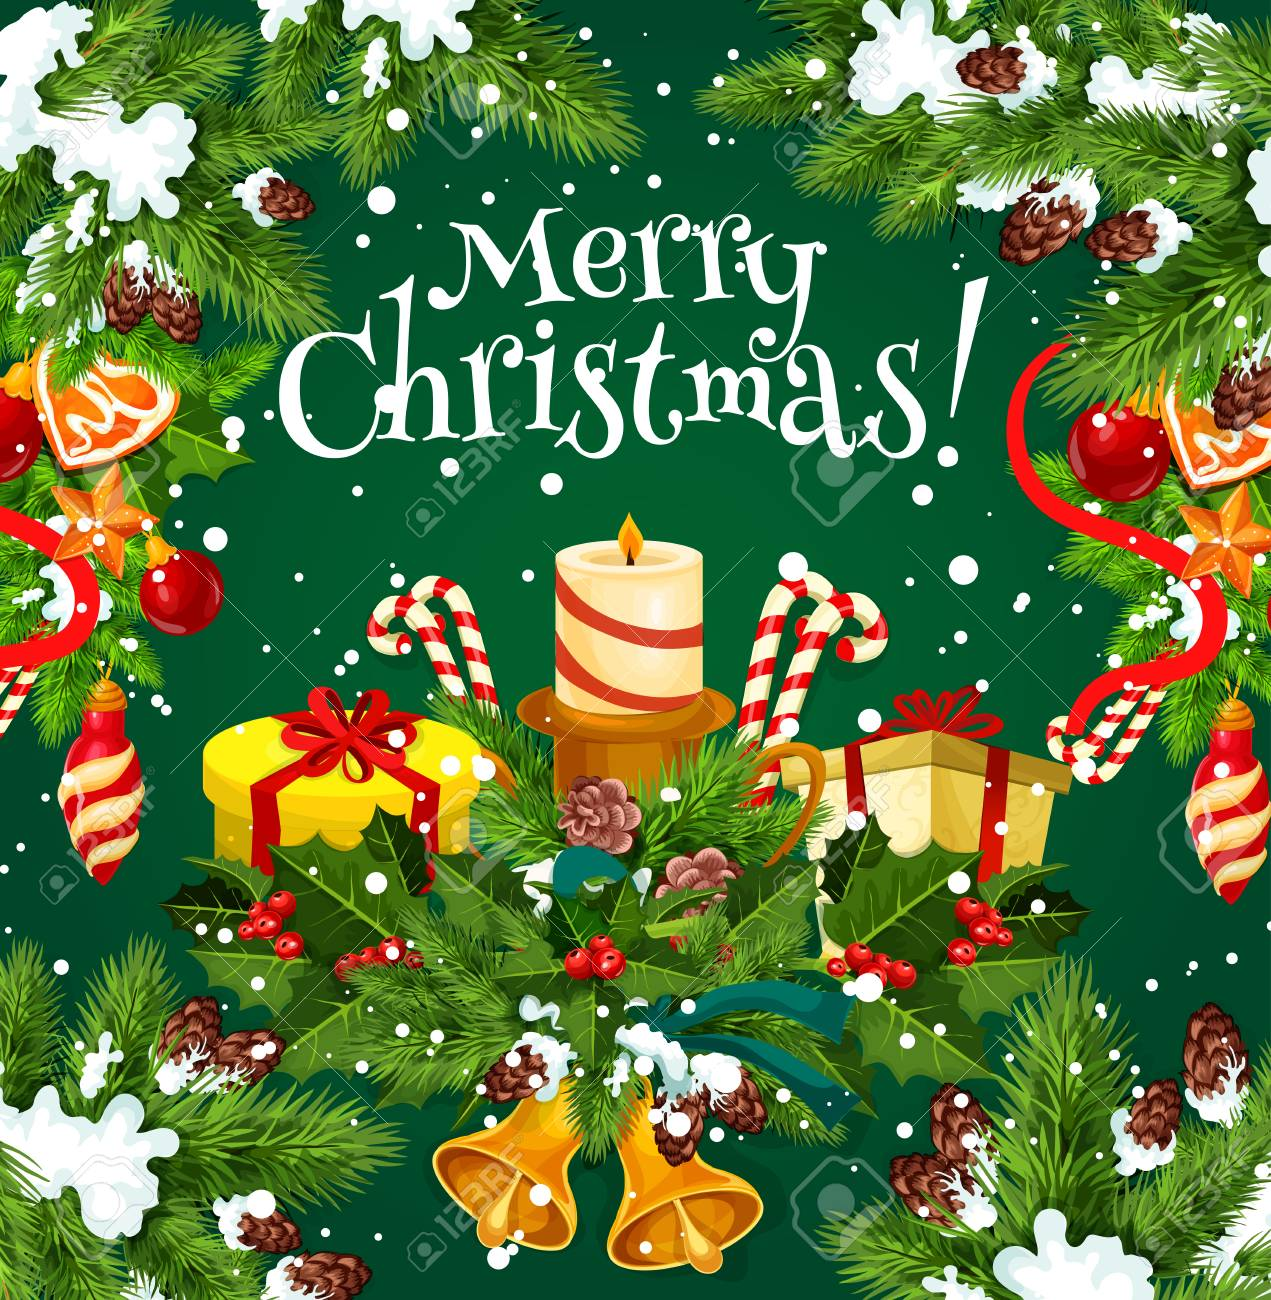 Merry Christmas Wish And Greeting Card Design For Winter Happy ...